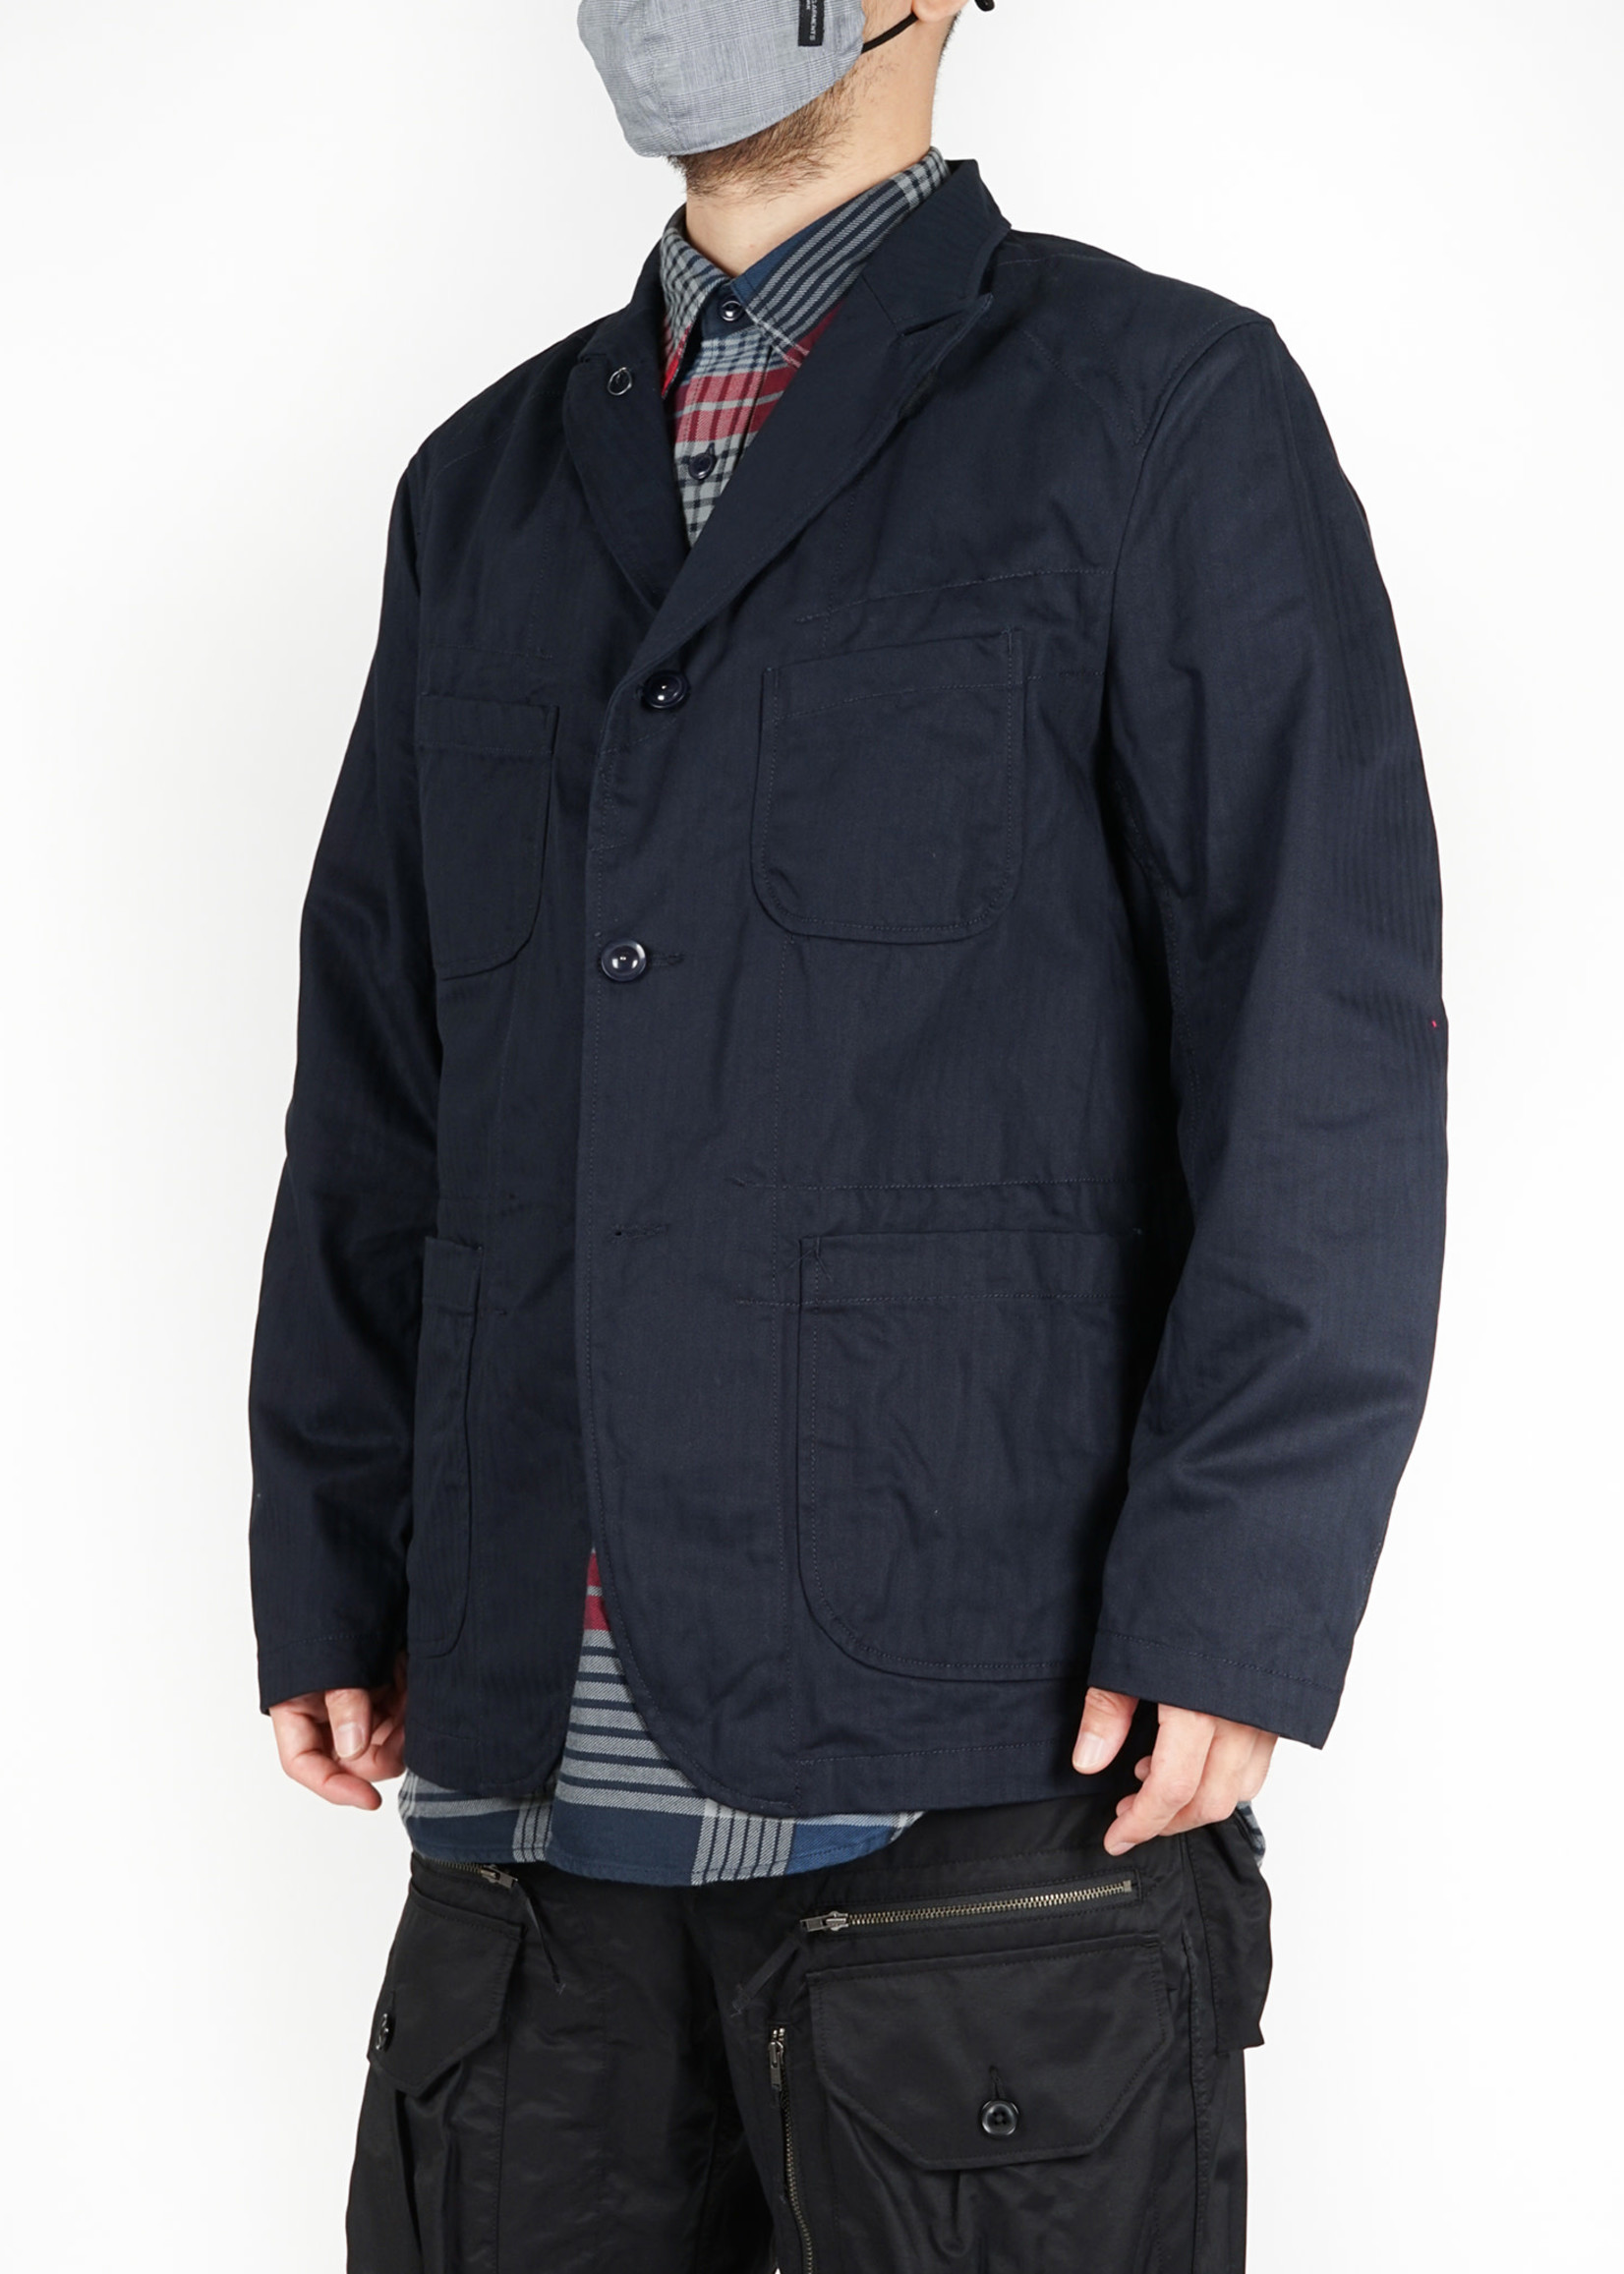 Engineered Garments Bedford Jacket Navy Cotton Herringbone by Engineered Garments